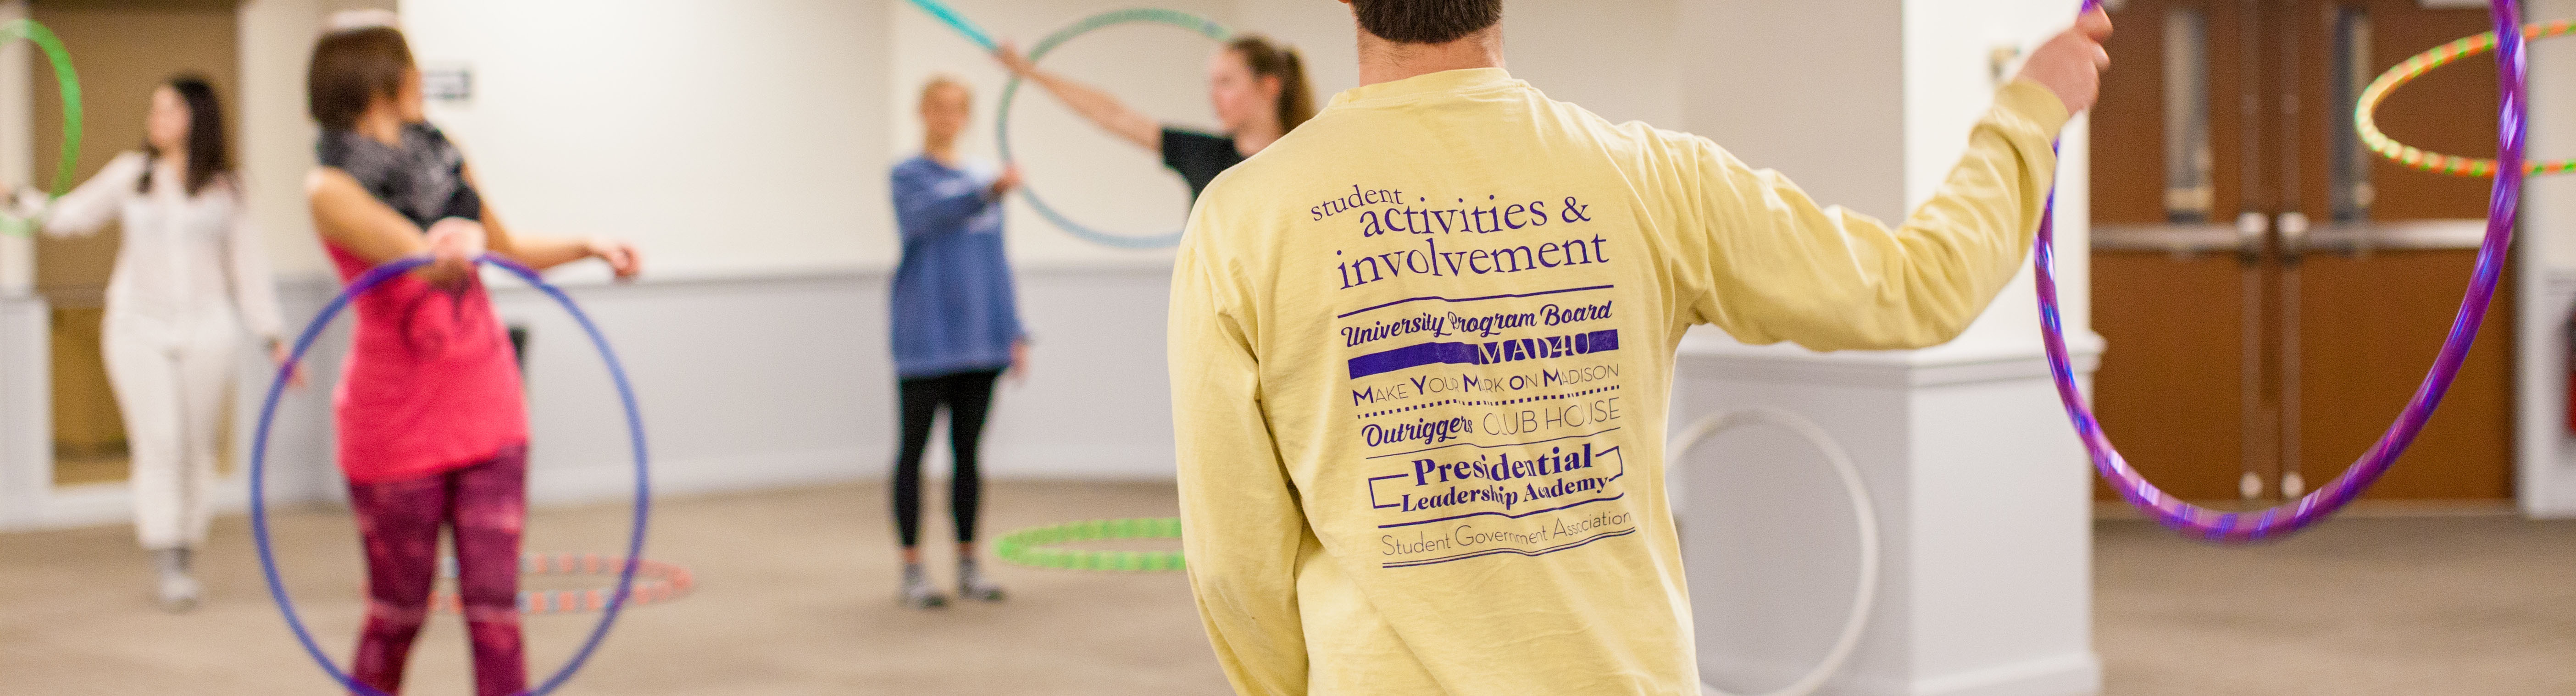 Young adults with hula hoops and the back of a persons JMU Student Activities & Involvement shirt in the foreground.